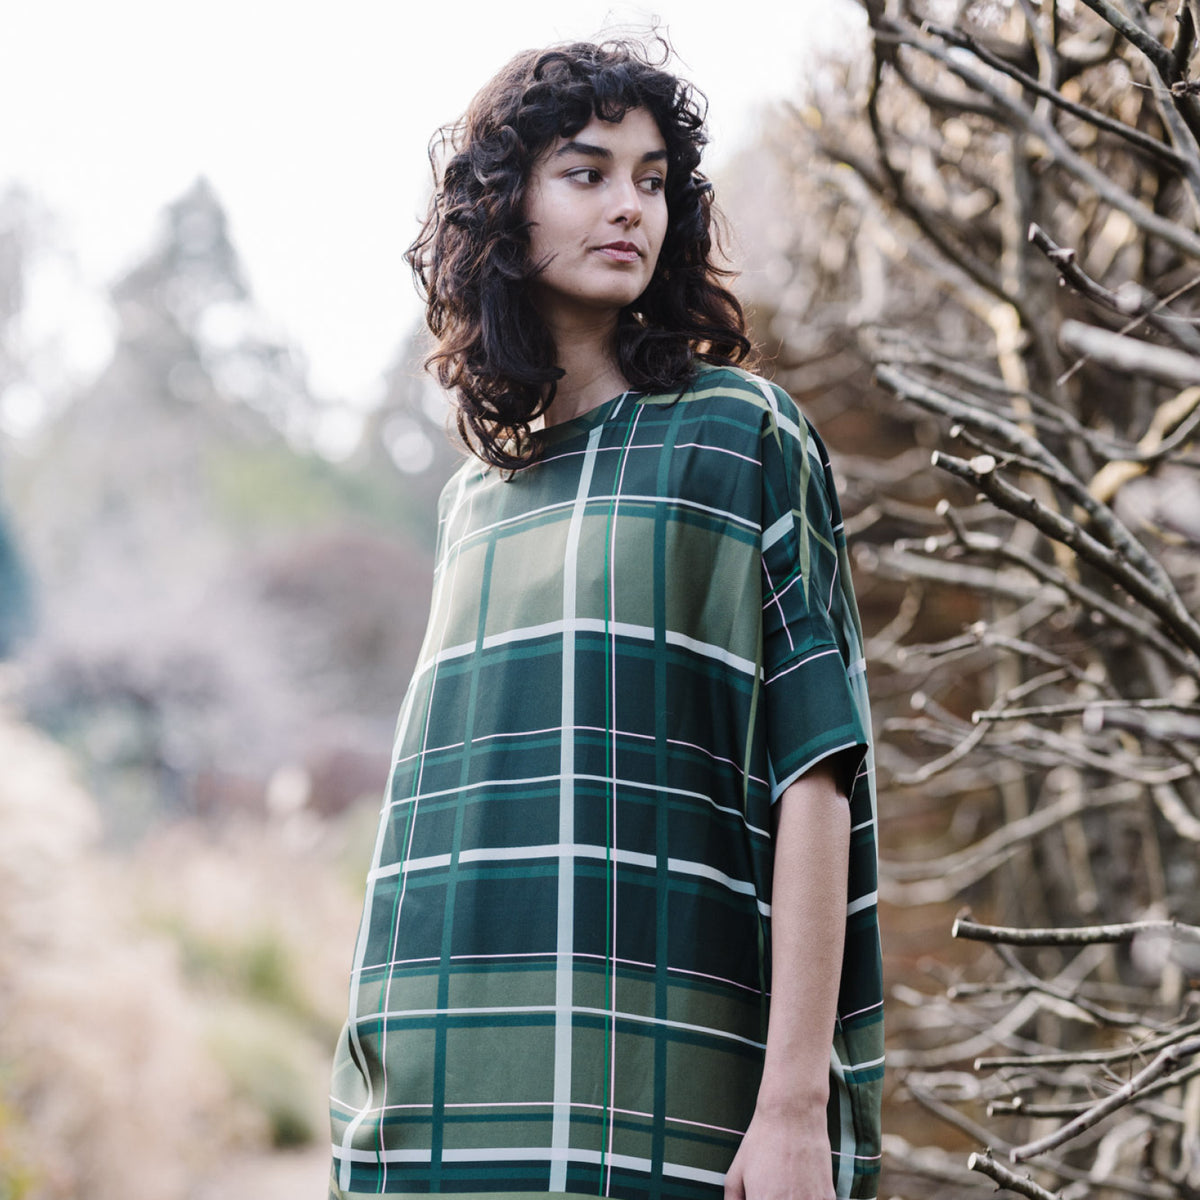 Woman wears green and navy checked Elin T-shirt dress against a leafy backdrop.